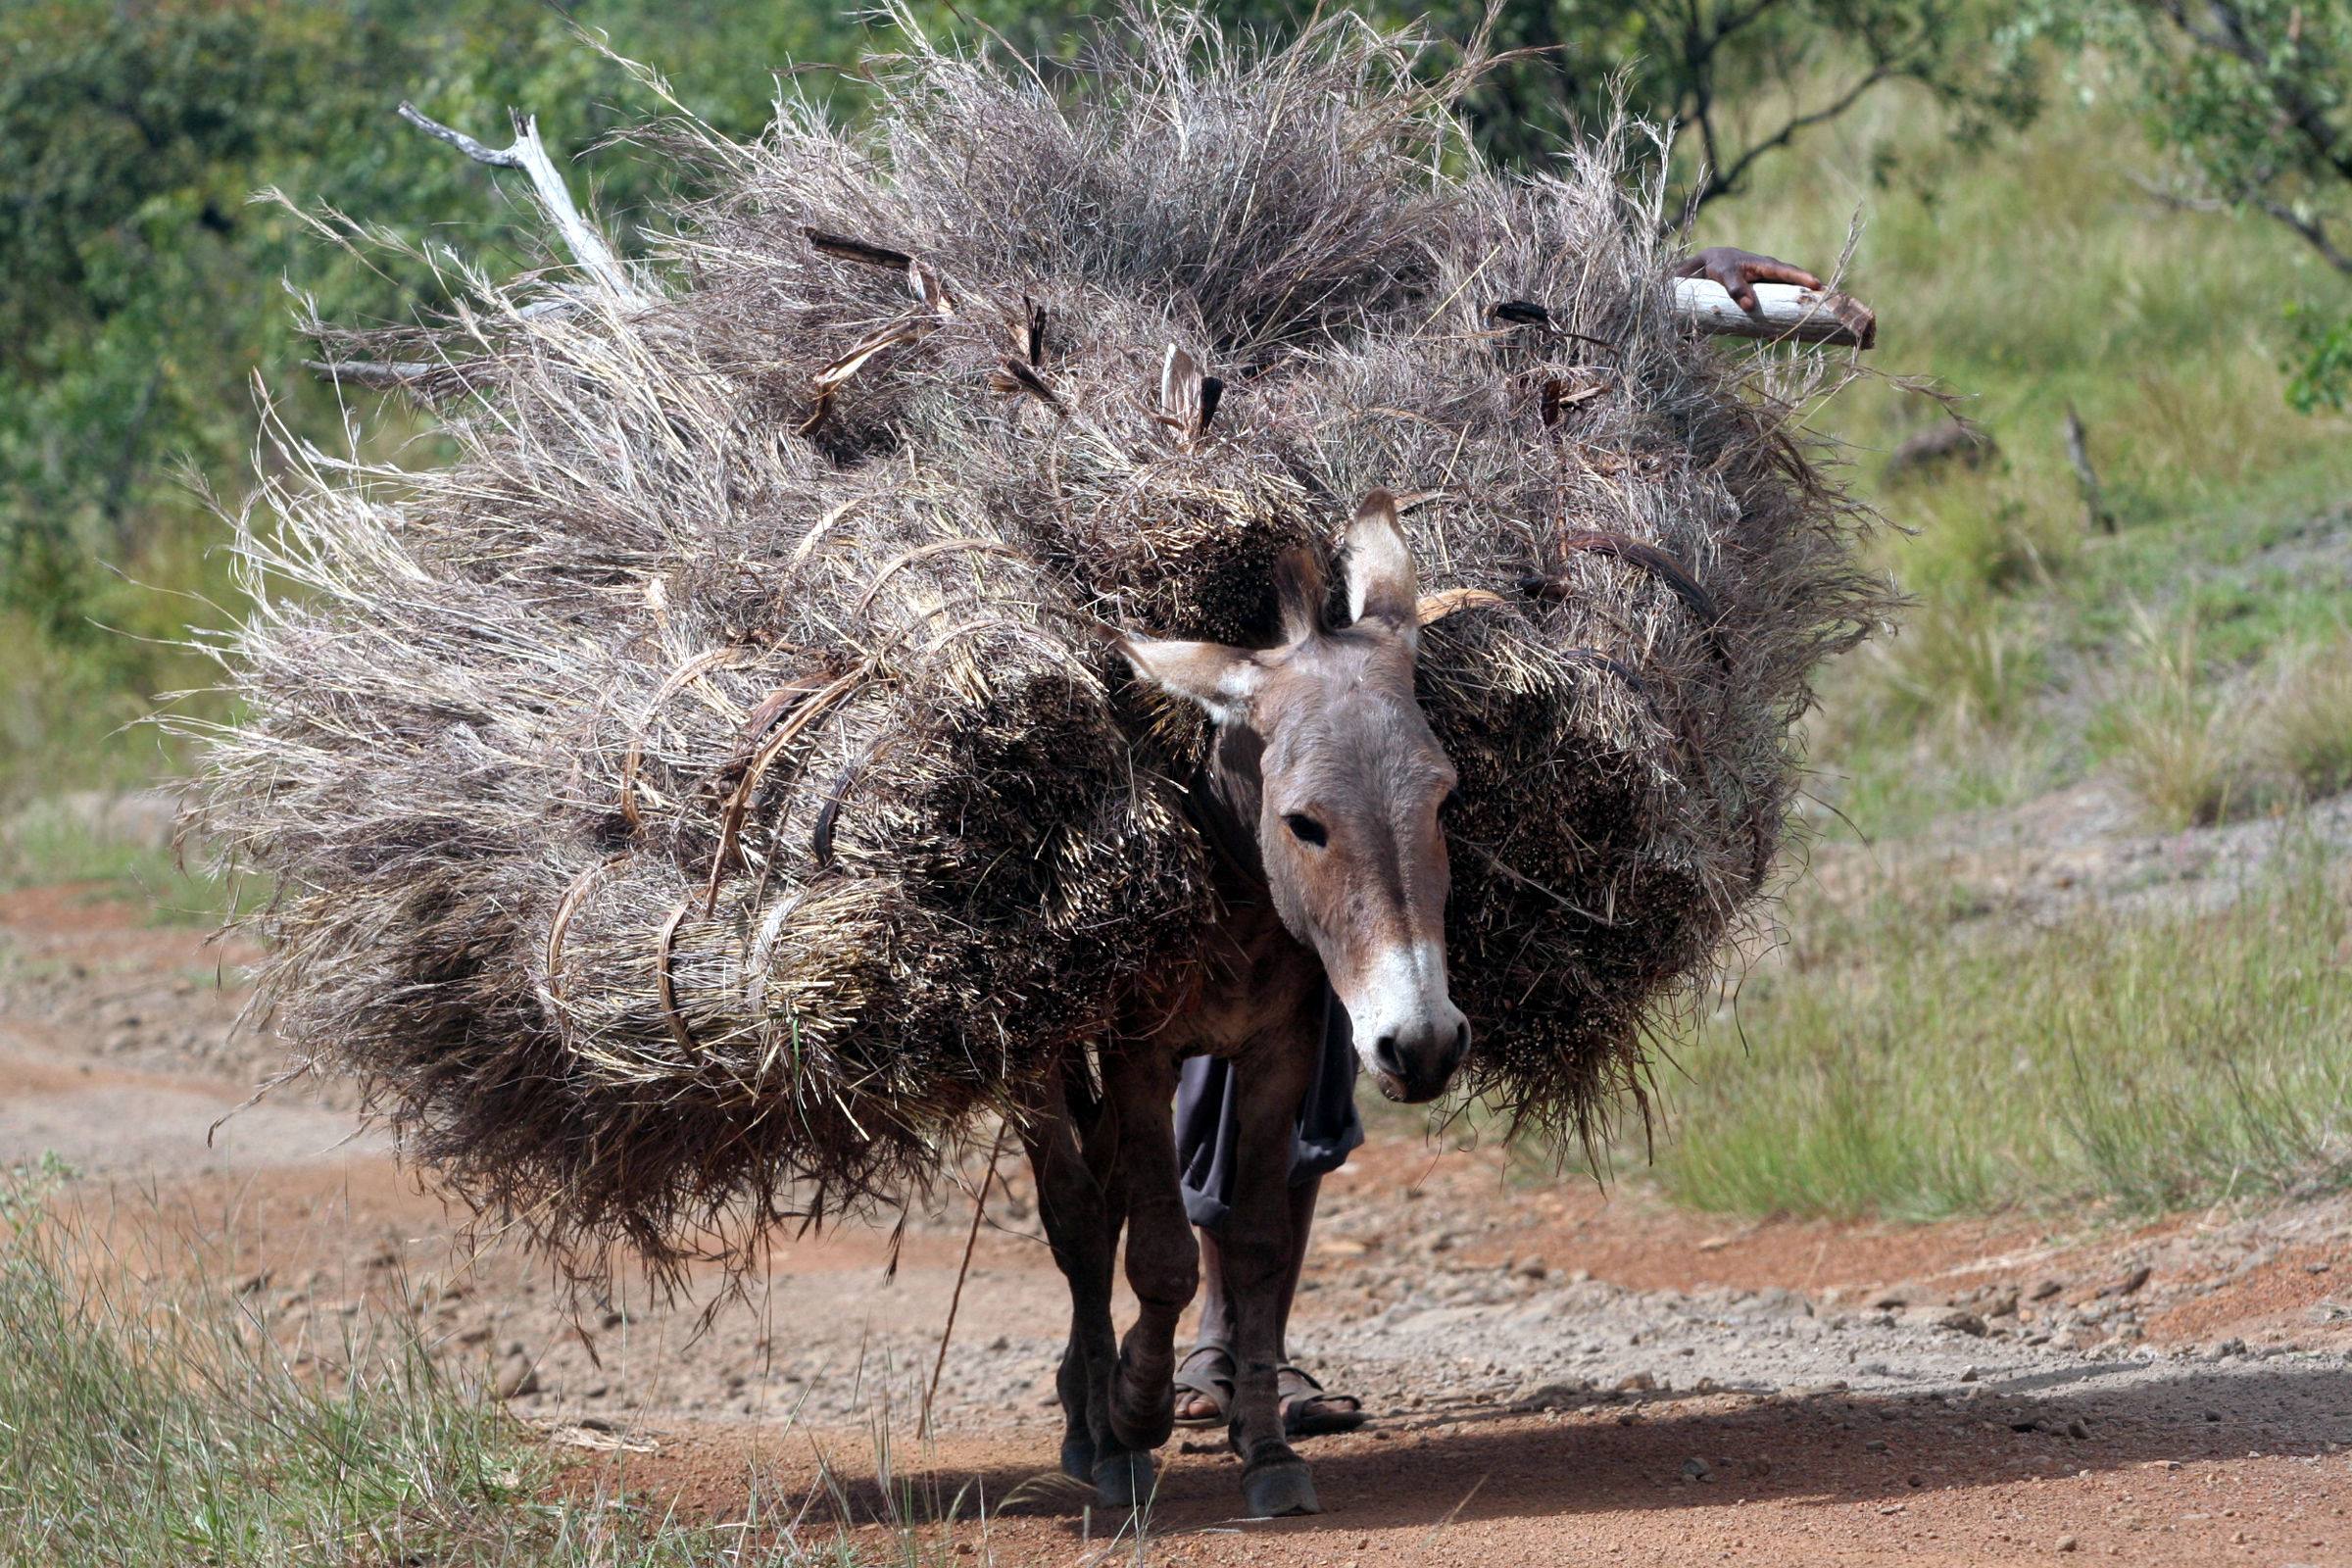 DONKEY WORKING